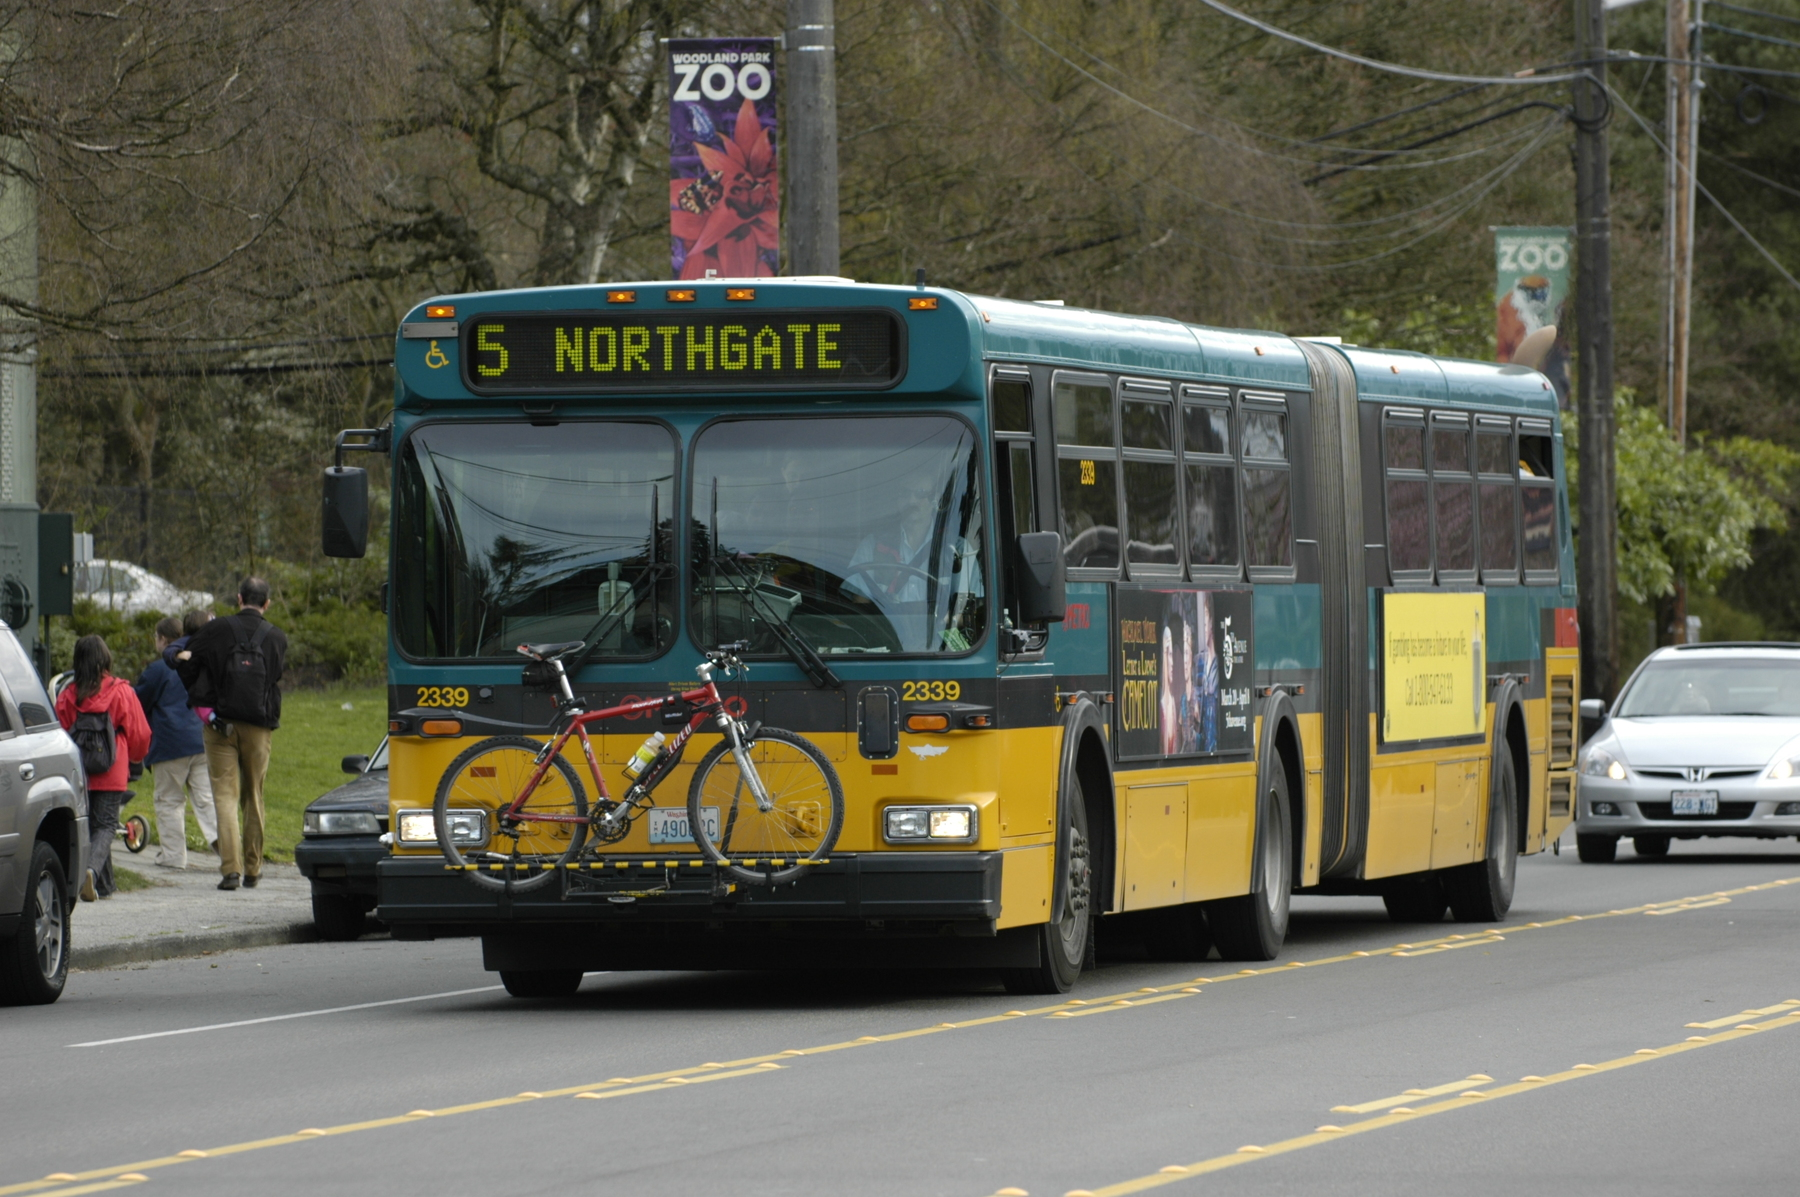 Bus to Woodland Park Zoo